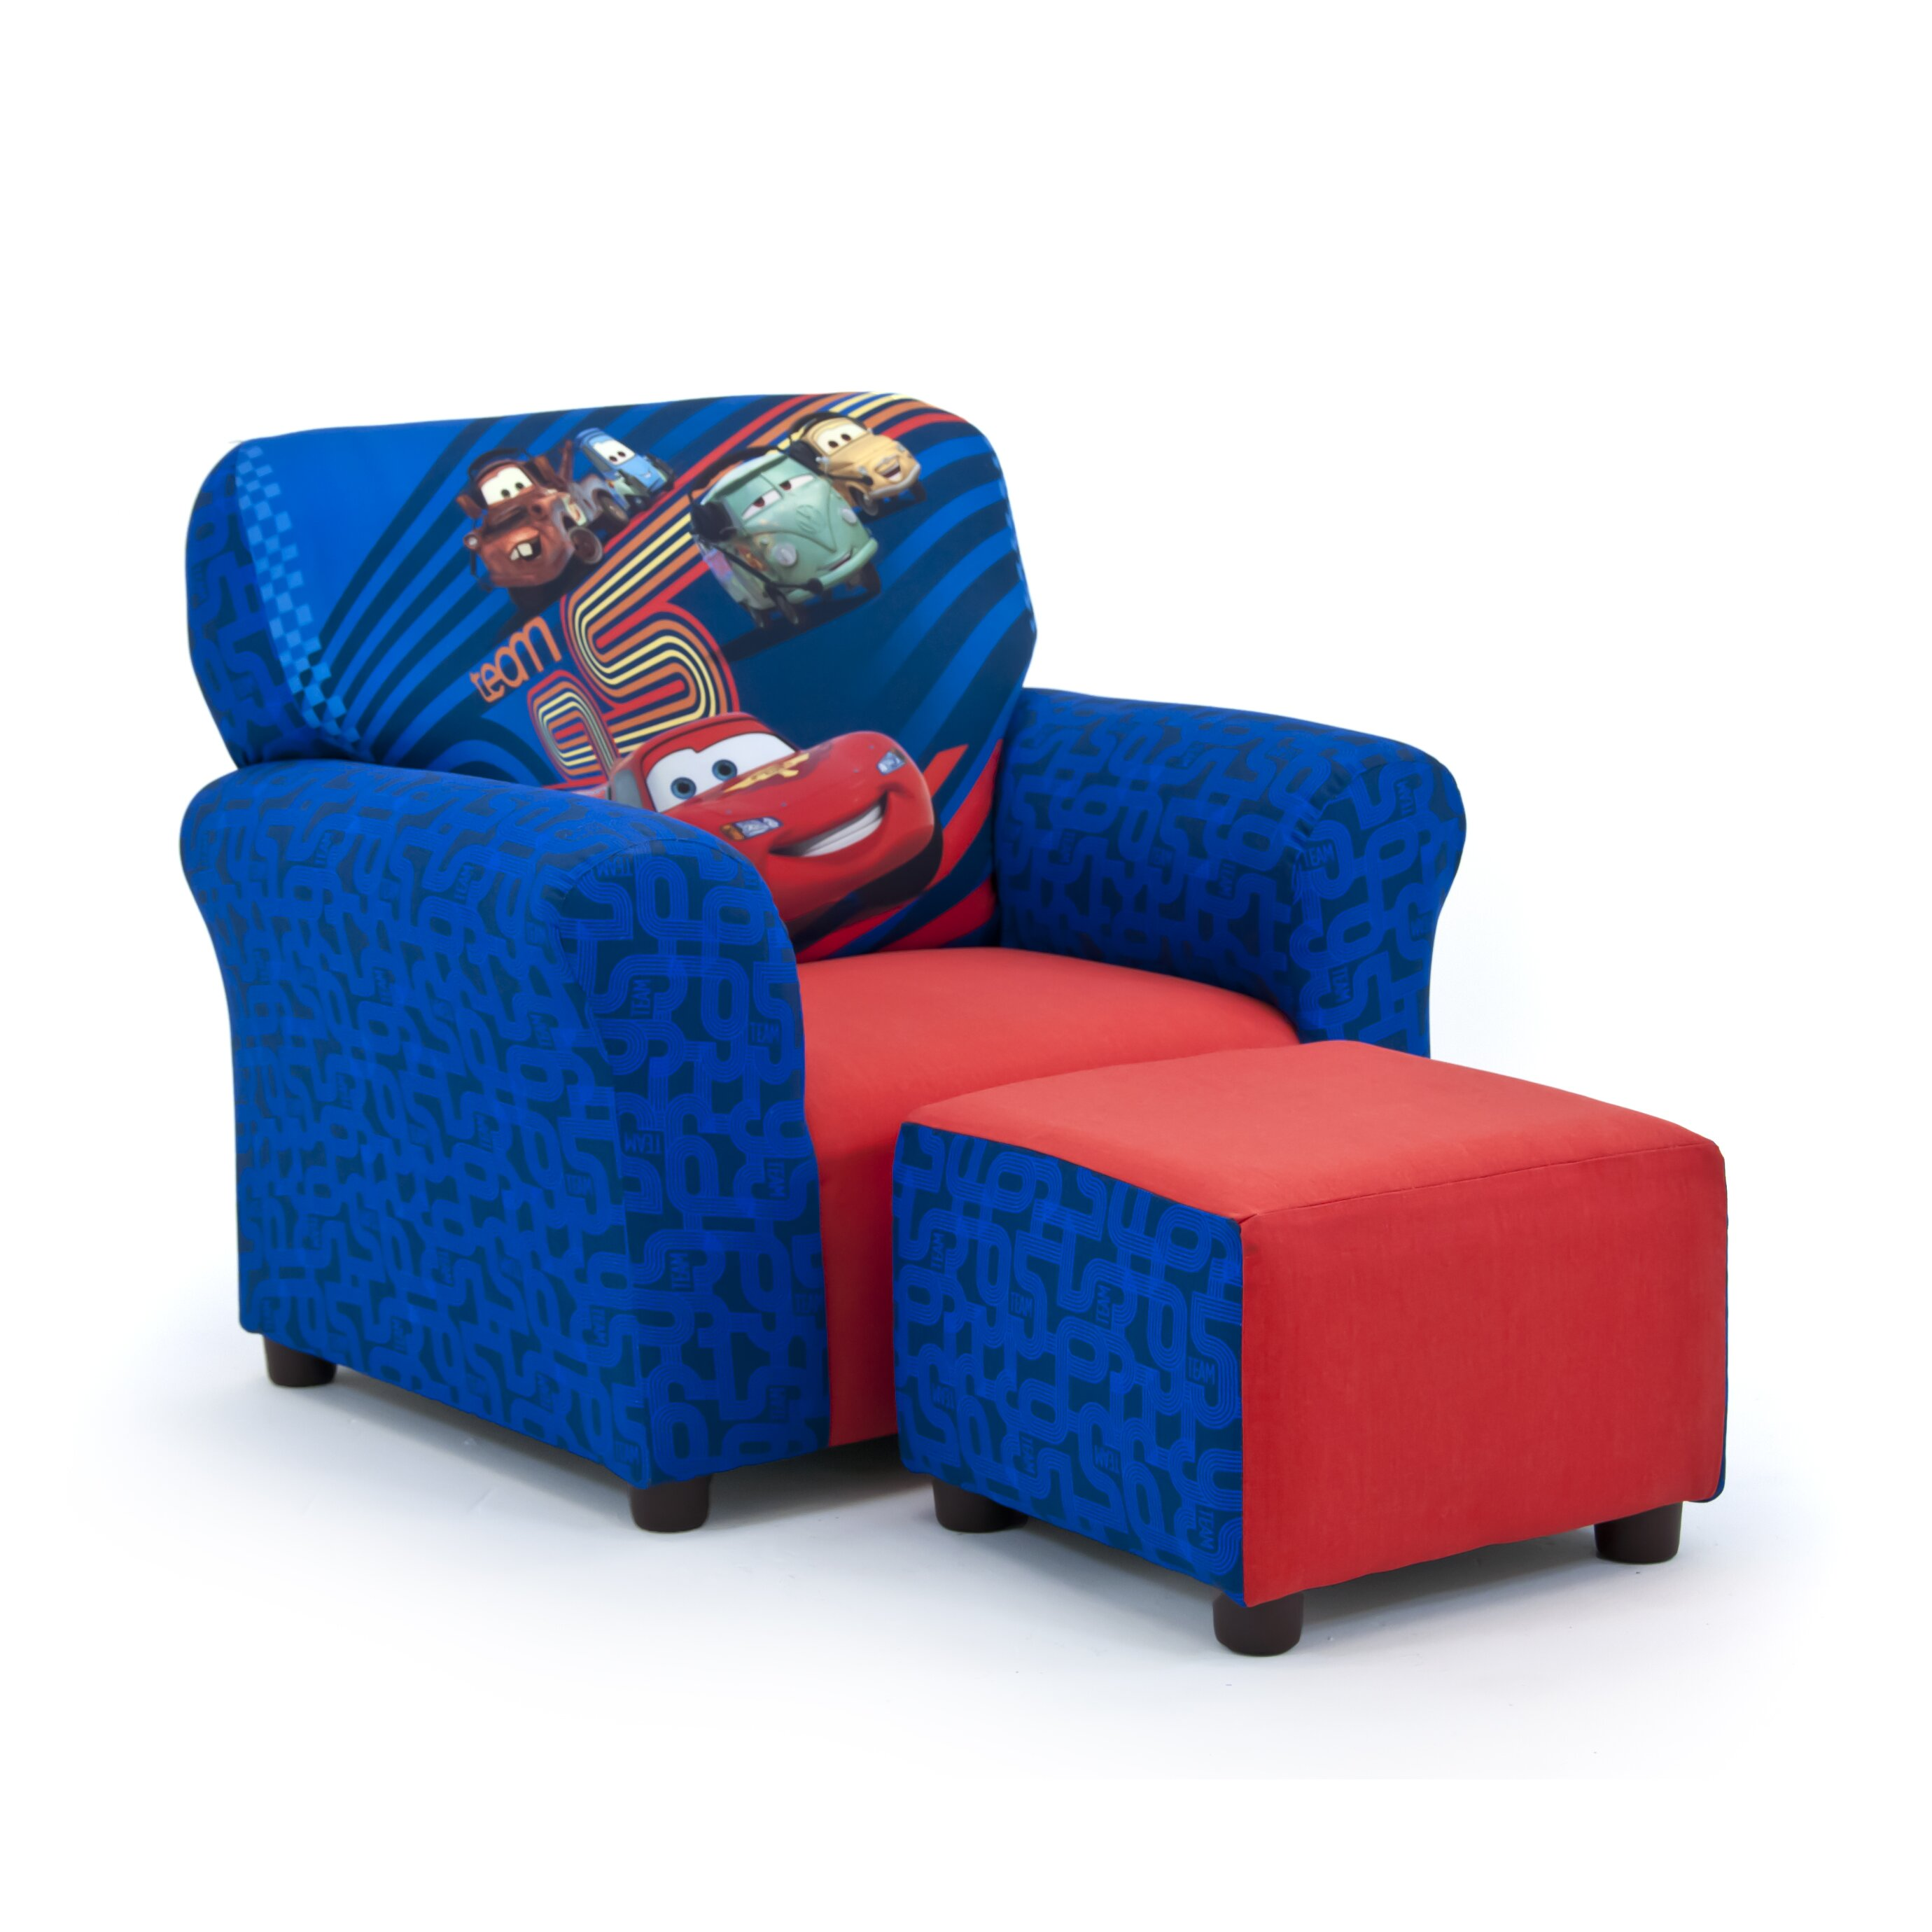 KidzWorld Disney 39 S Cars 2 Kids Club Chair And Ottoman